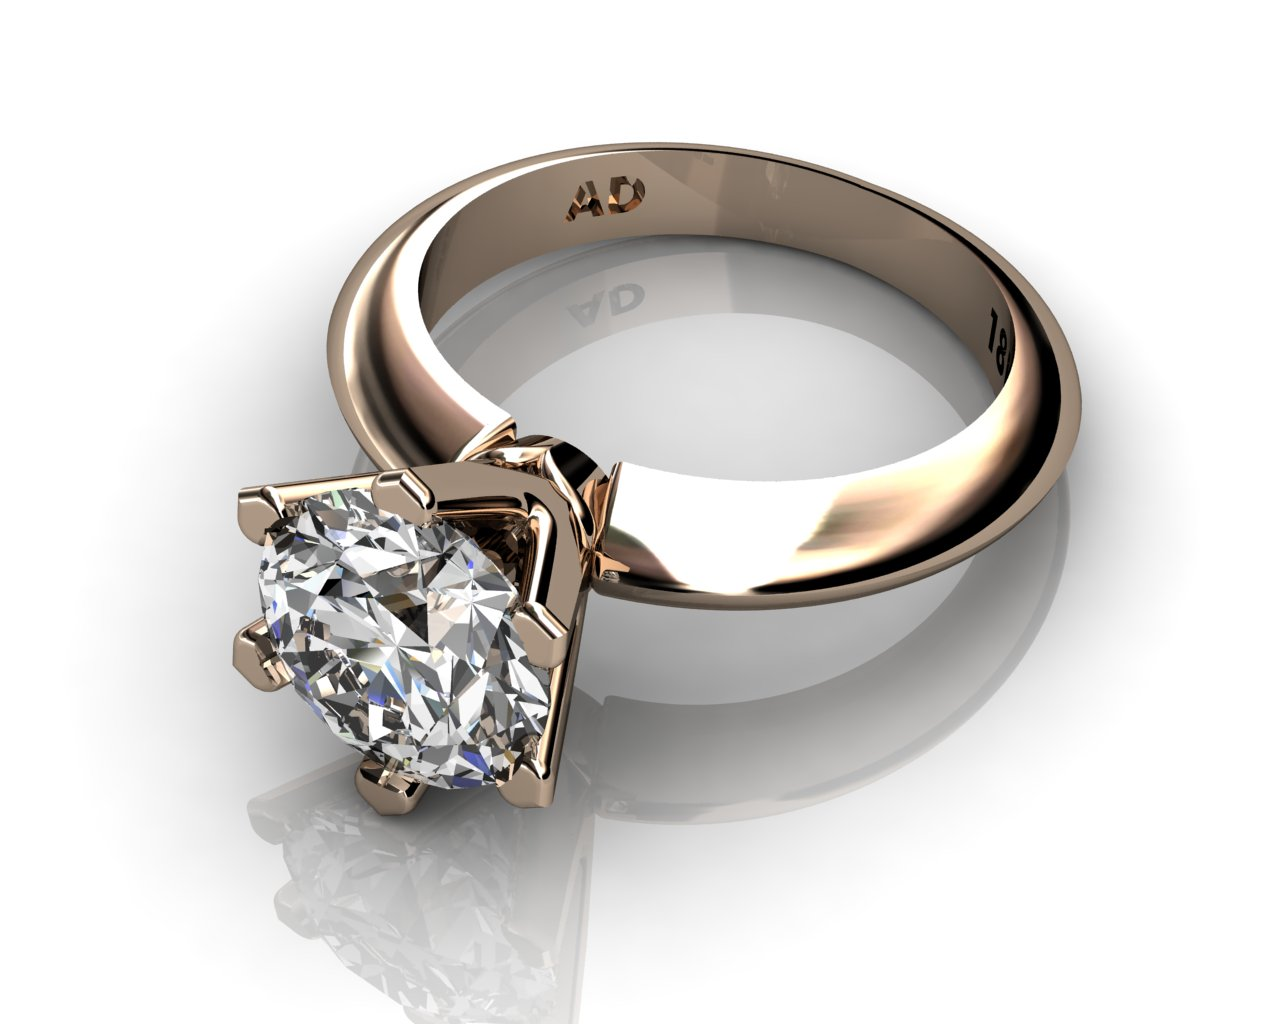 Diamond Solitaire Engagement Ring Round Cut 2.50ct Diamond 6 PRONGS 6gr 18kt Rose gold - South Bay Gold Torrance